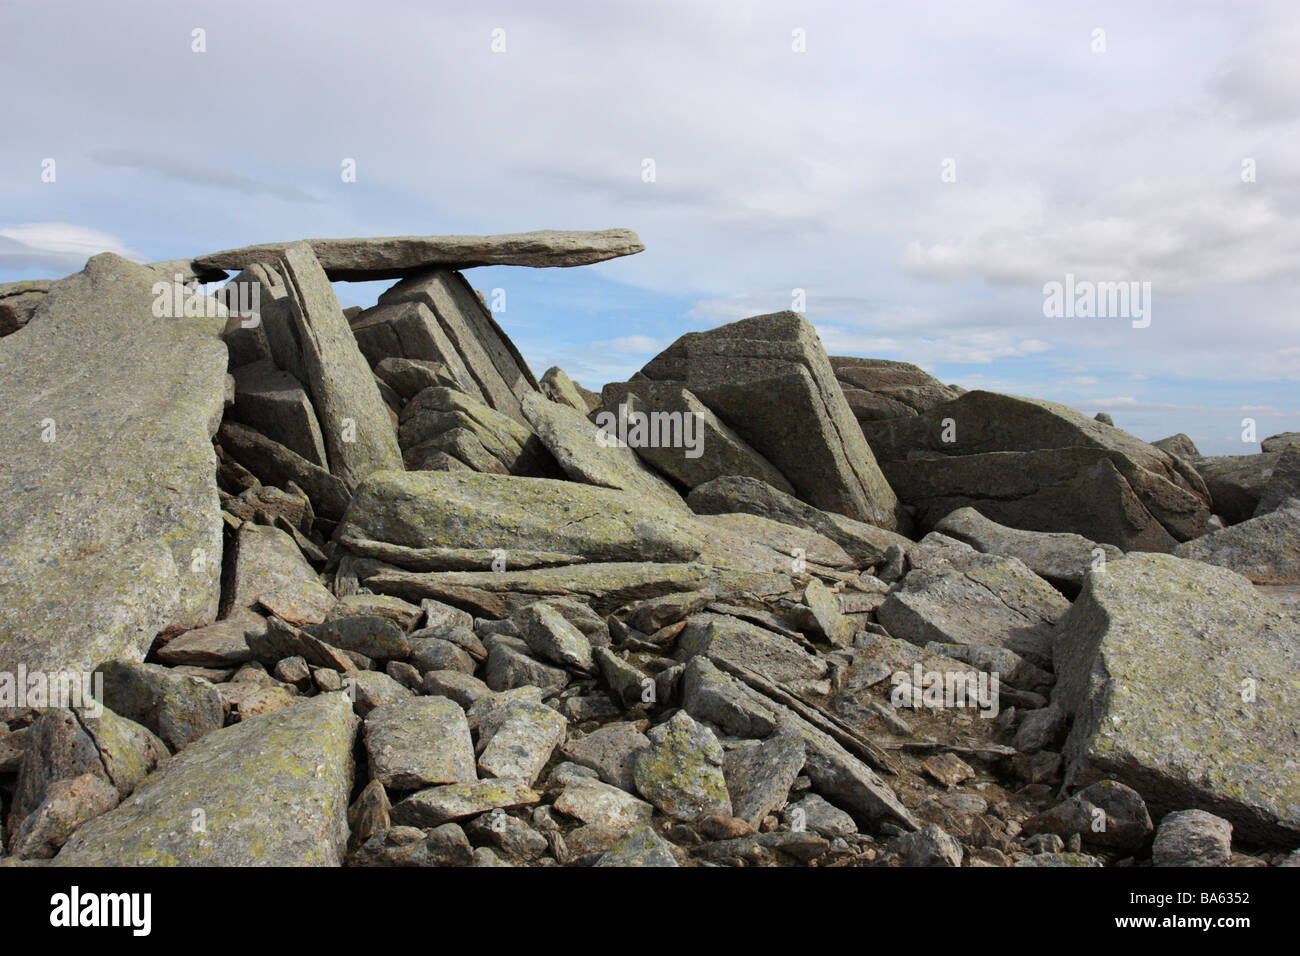 The famous Cantilever stone on the summit of Glyder Fach, a mountain in Snowdonia, North Wales - Stock Image